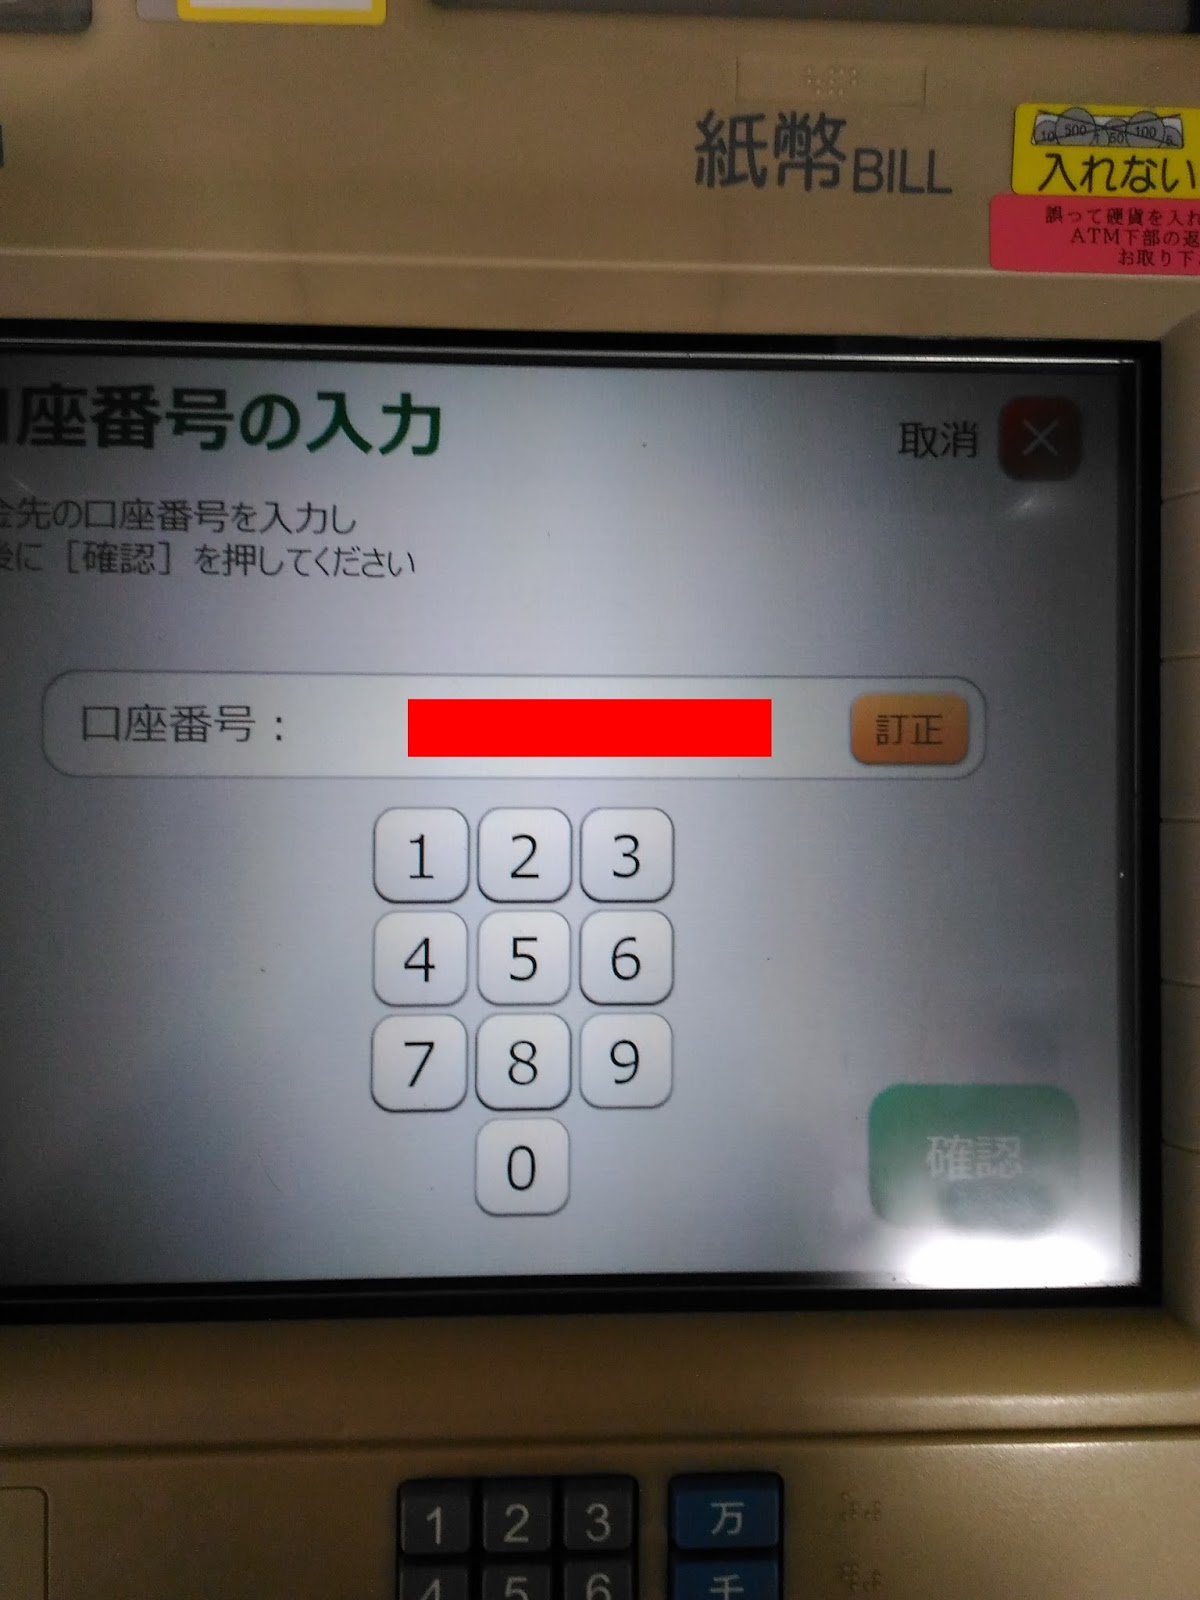 how to put money in bank account from atm